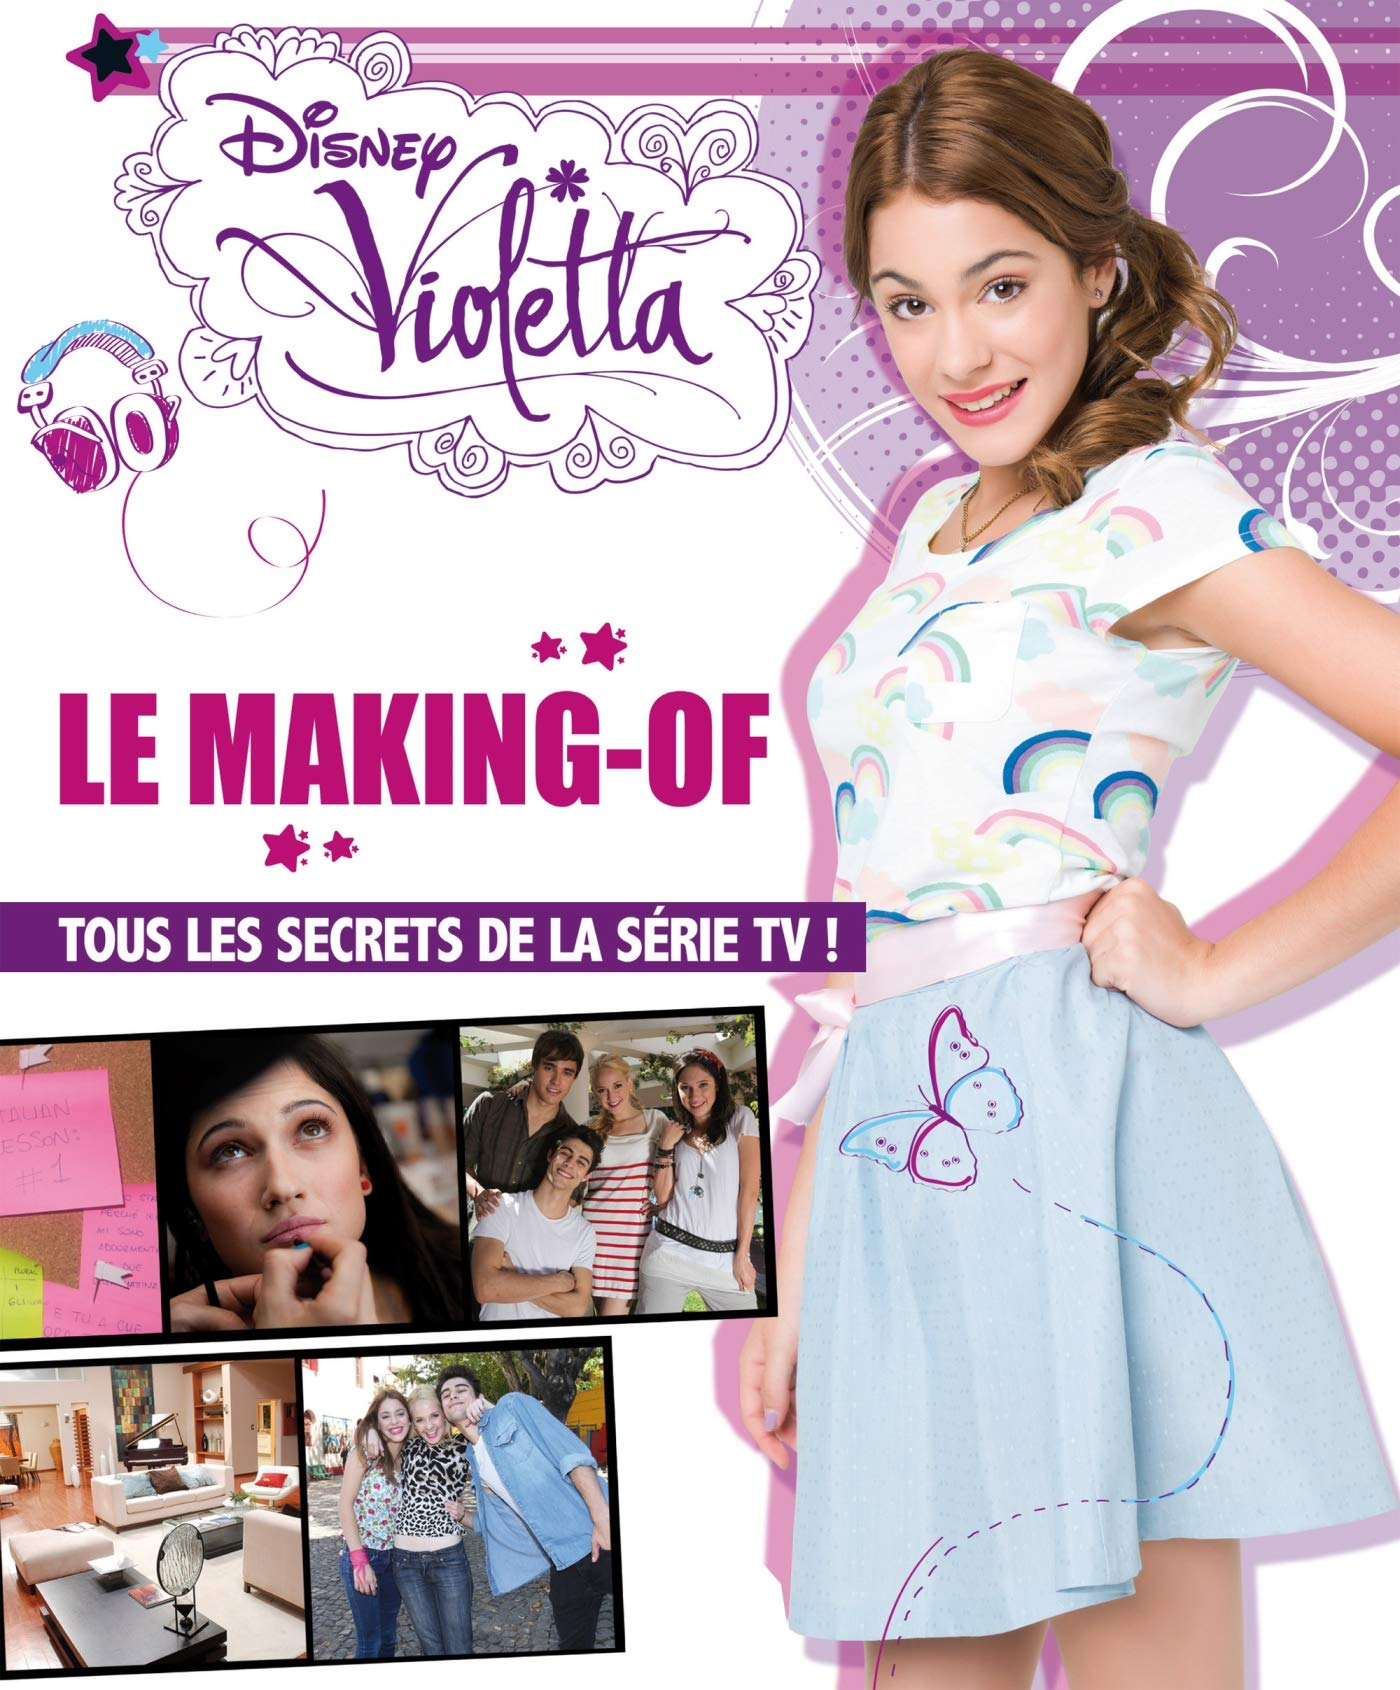 Violetta Le Making Off Tous Les Secrets De La Série Tv Amazon Co Uk Disney 9782014645392 Books